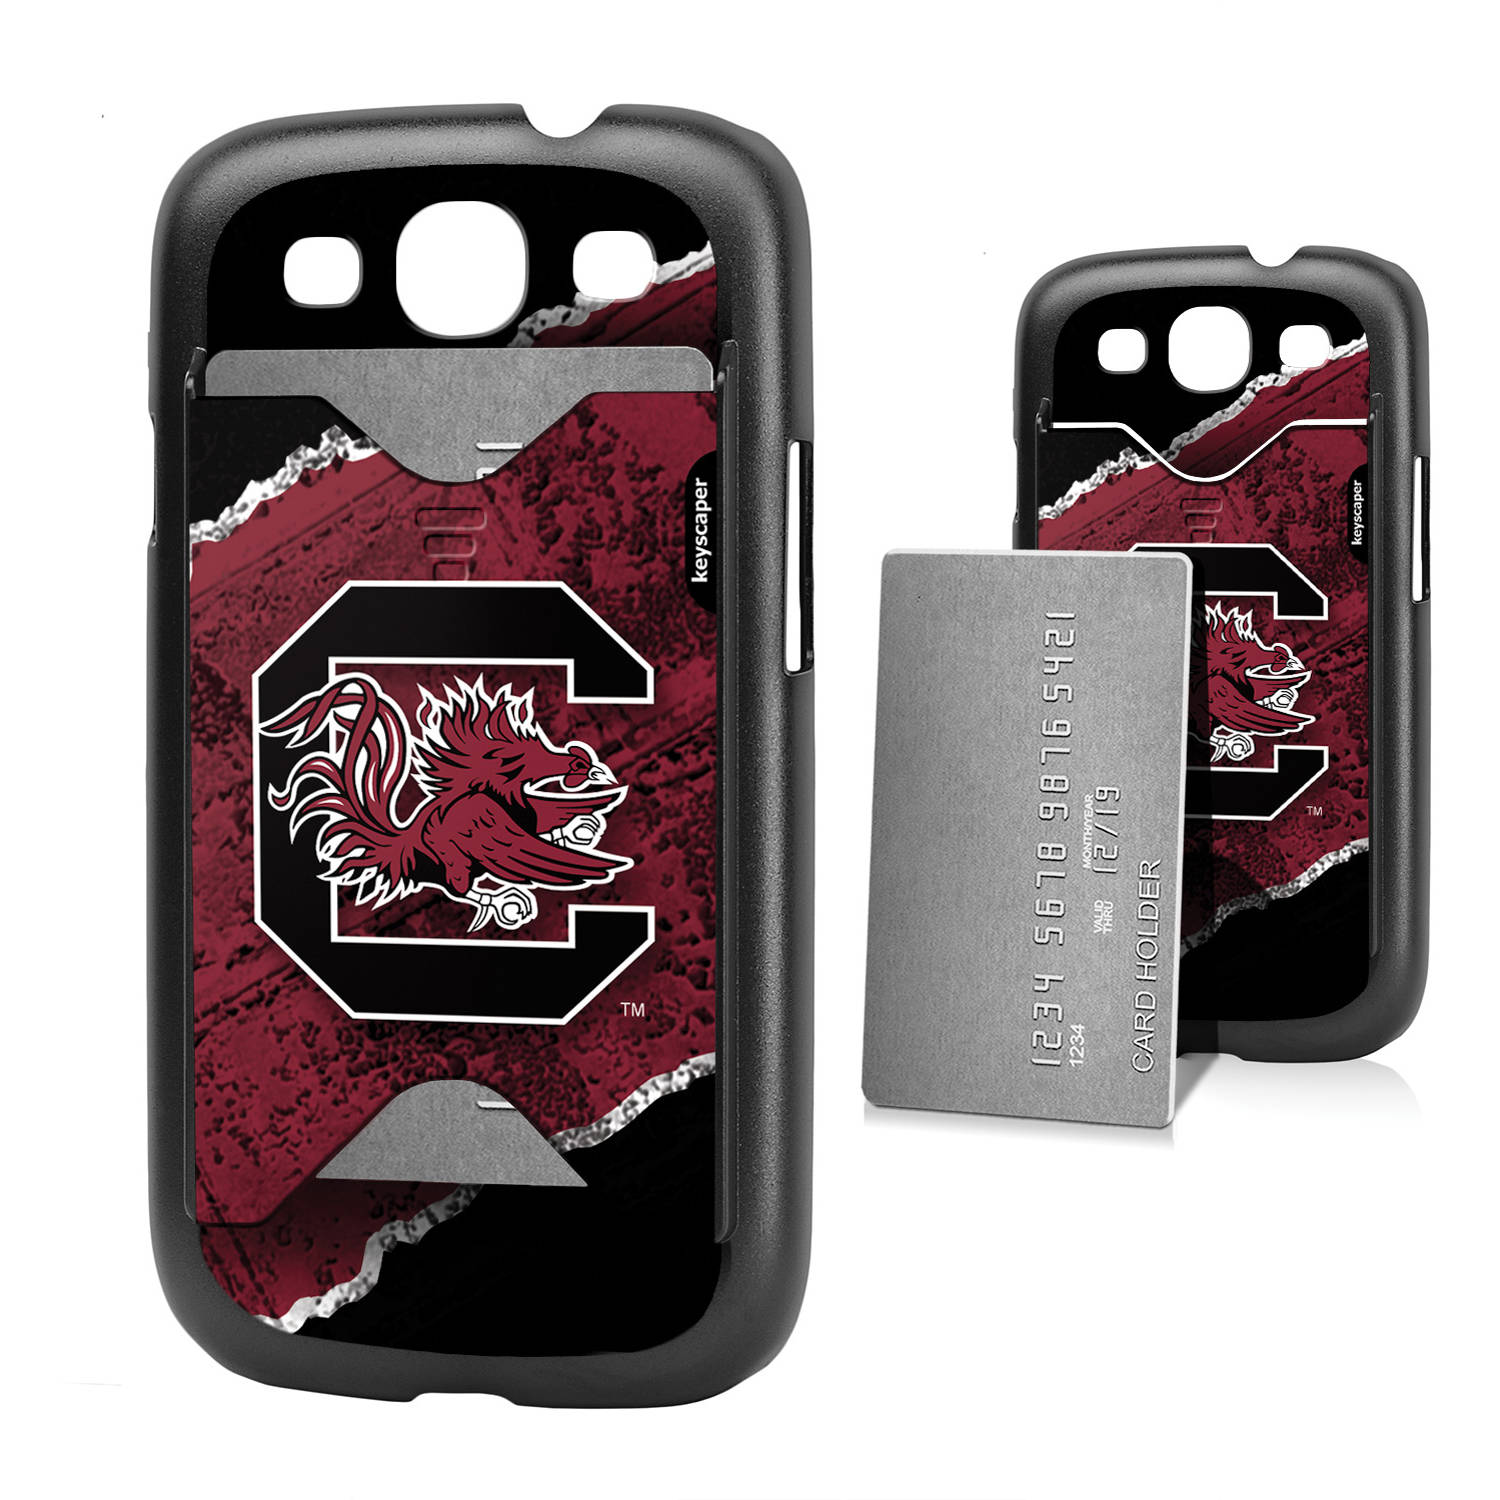 South Carolina Fighting Gamecocks Galaxy S3 Credit Card Case